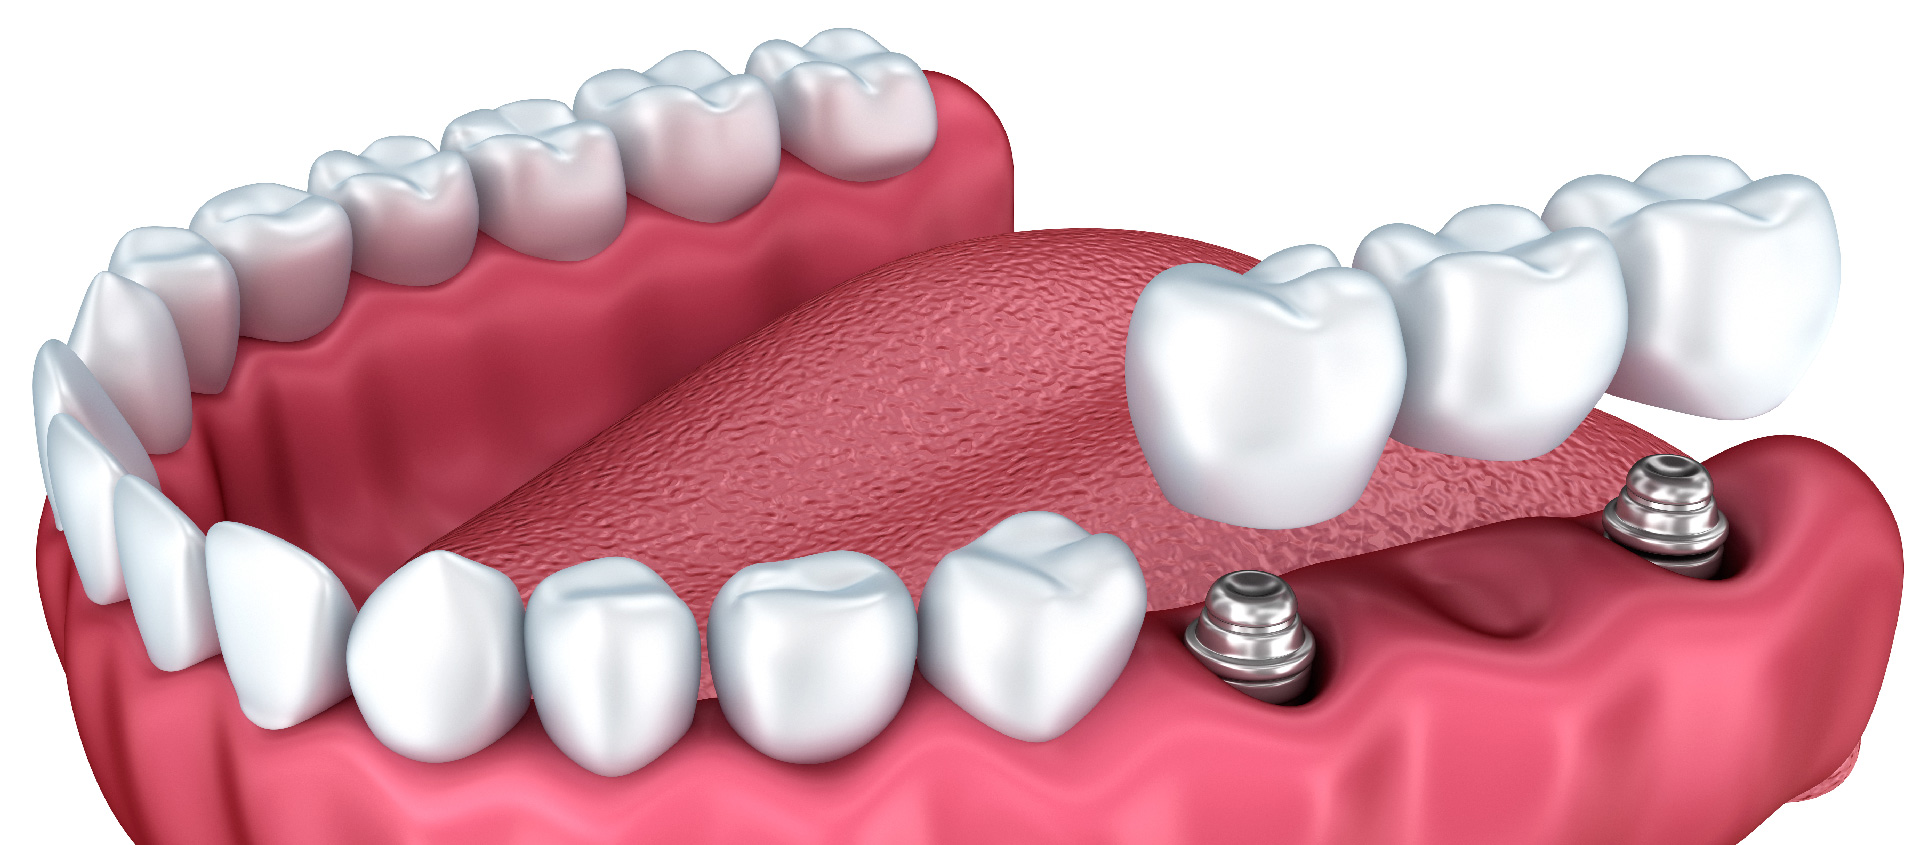 What are the porcelain dental crowns and now can I get treatments near Brandon, Florida